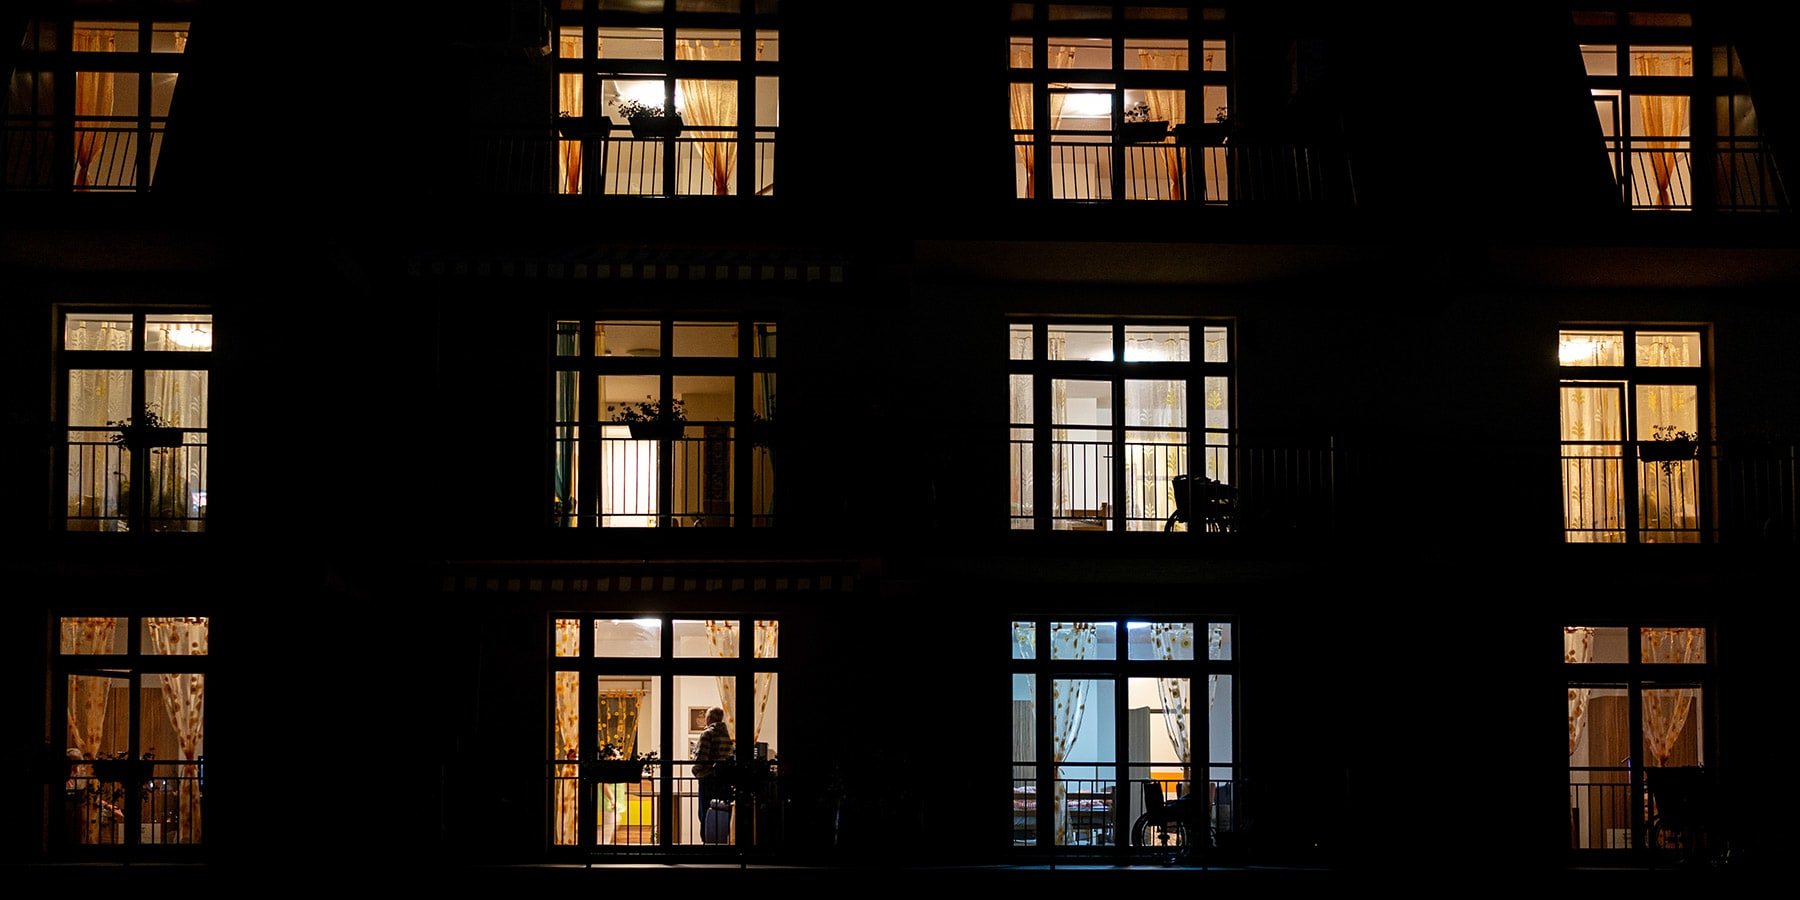 Grid of apartment building windows at night with light glowing from inside the homes.